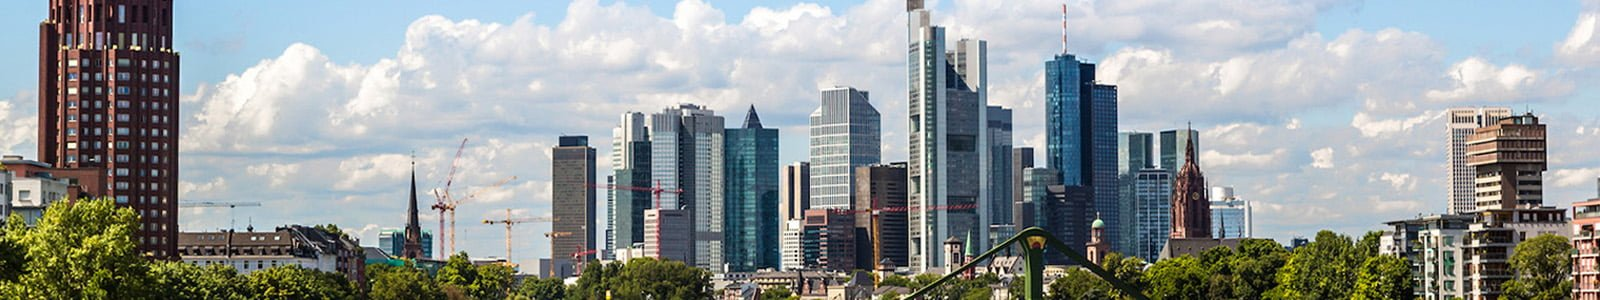 Roadshows Frankfurt am Main